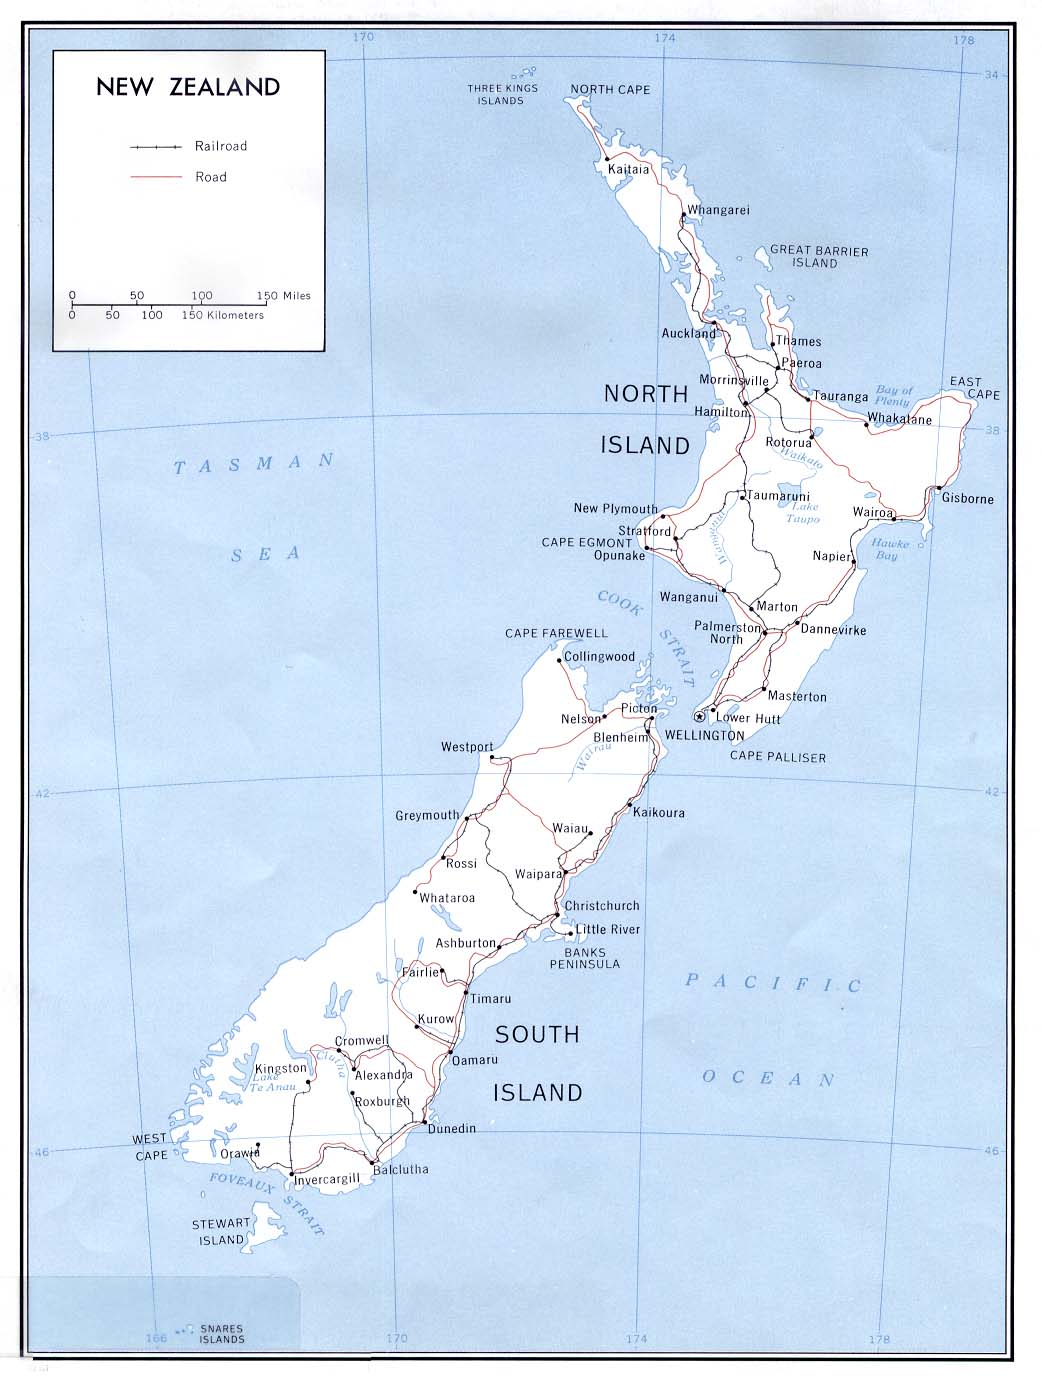 New Zealand Maps - Perry-Castañeda Map Collection - UT Library Online